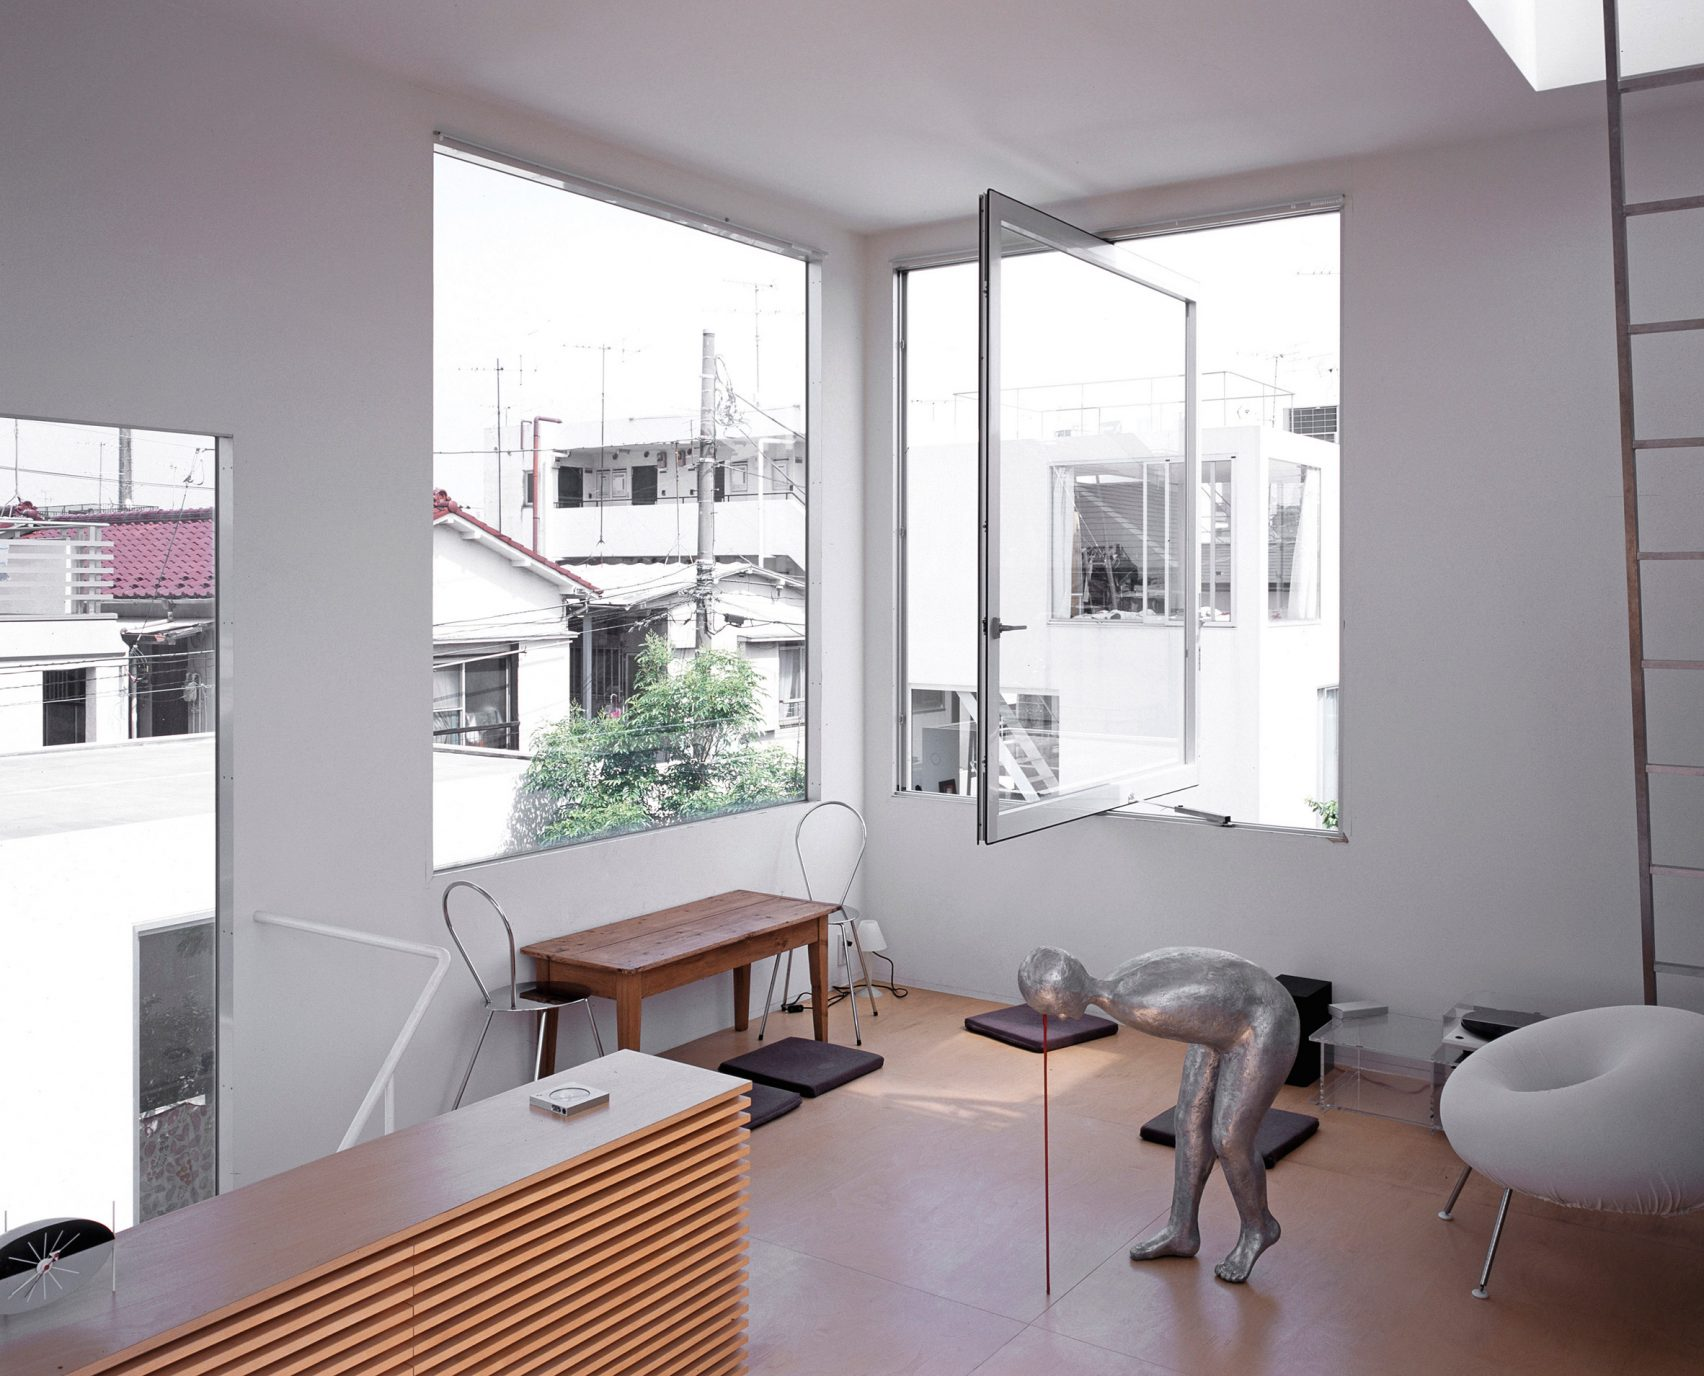 moriyama-house-photos-edmund-sumner-architecture-photography-residential-japan_dezeen_2364_col_11-1704x1376